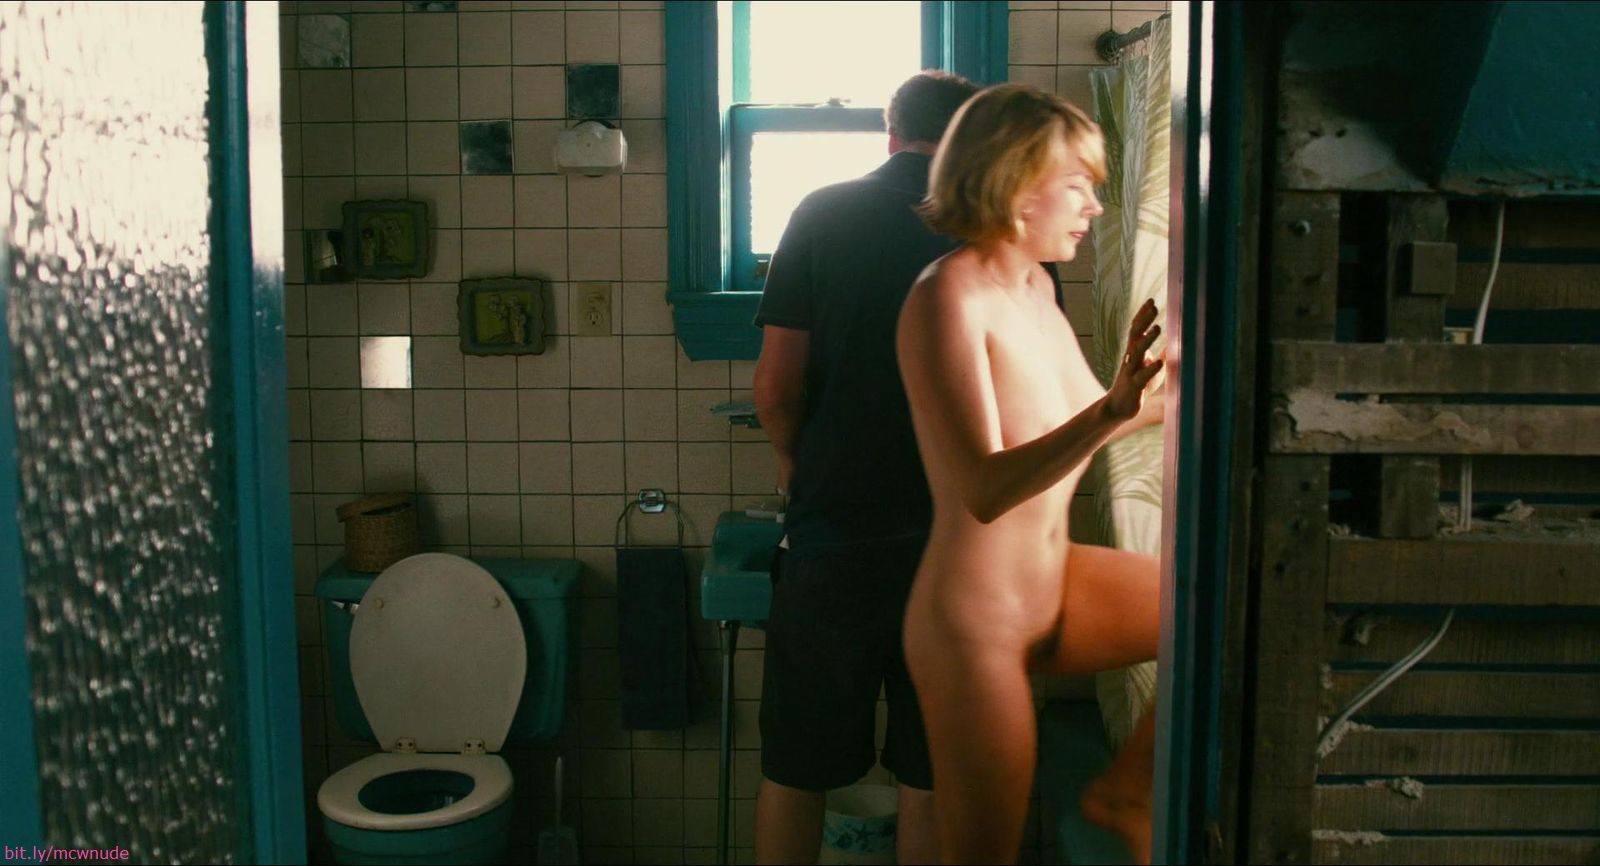 Commit Michelle williams nude vagina that result